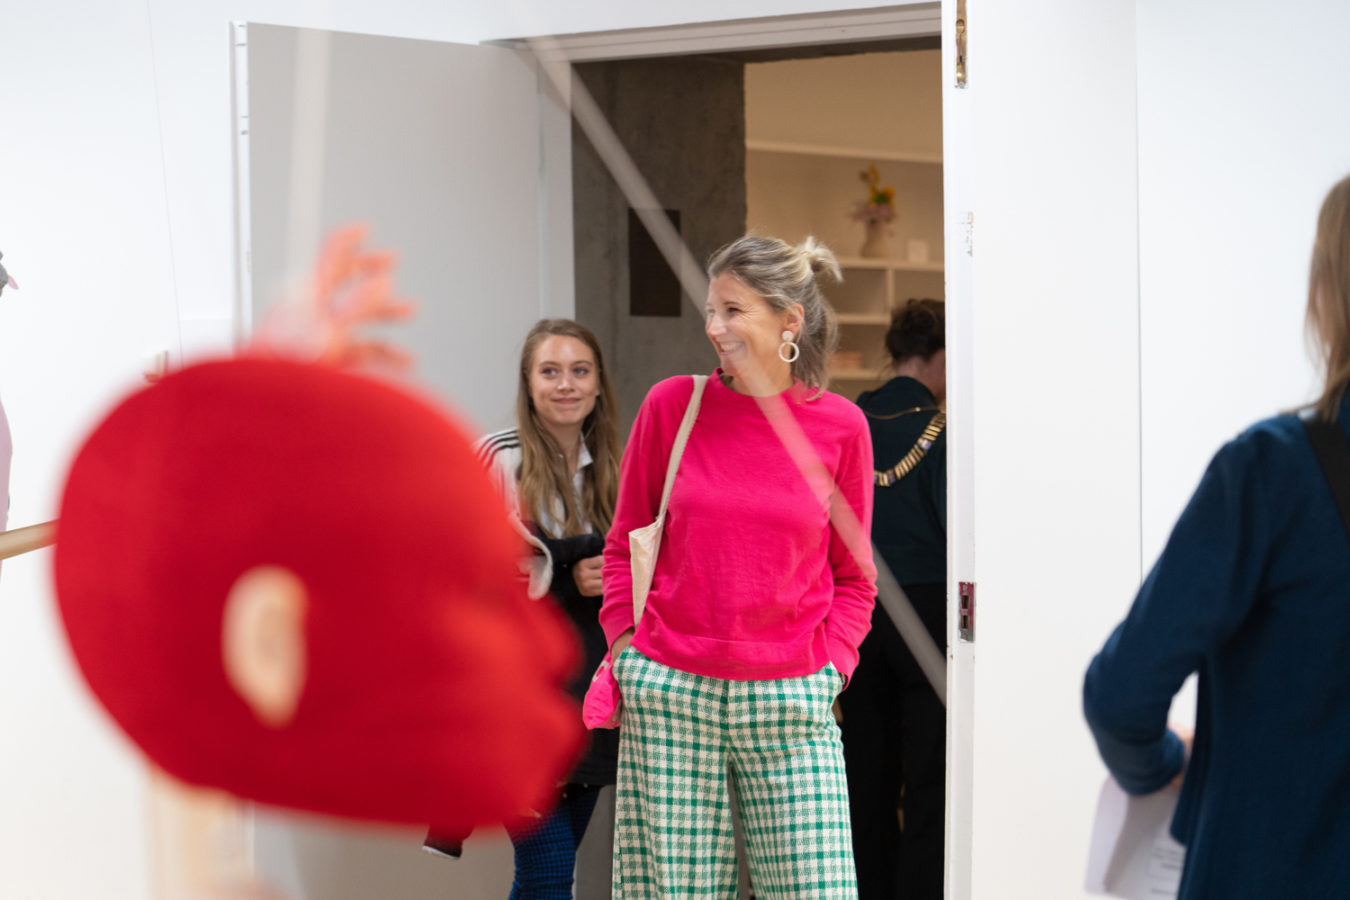 Book a guided tour at Kunsthall Stavanger